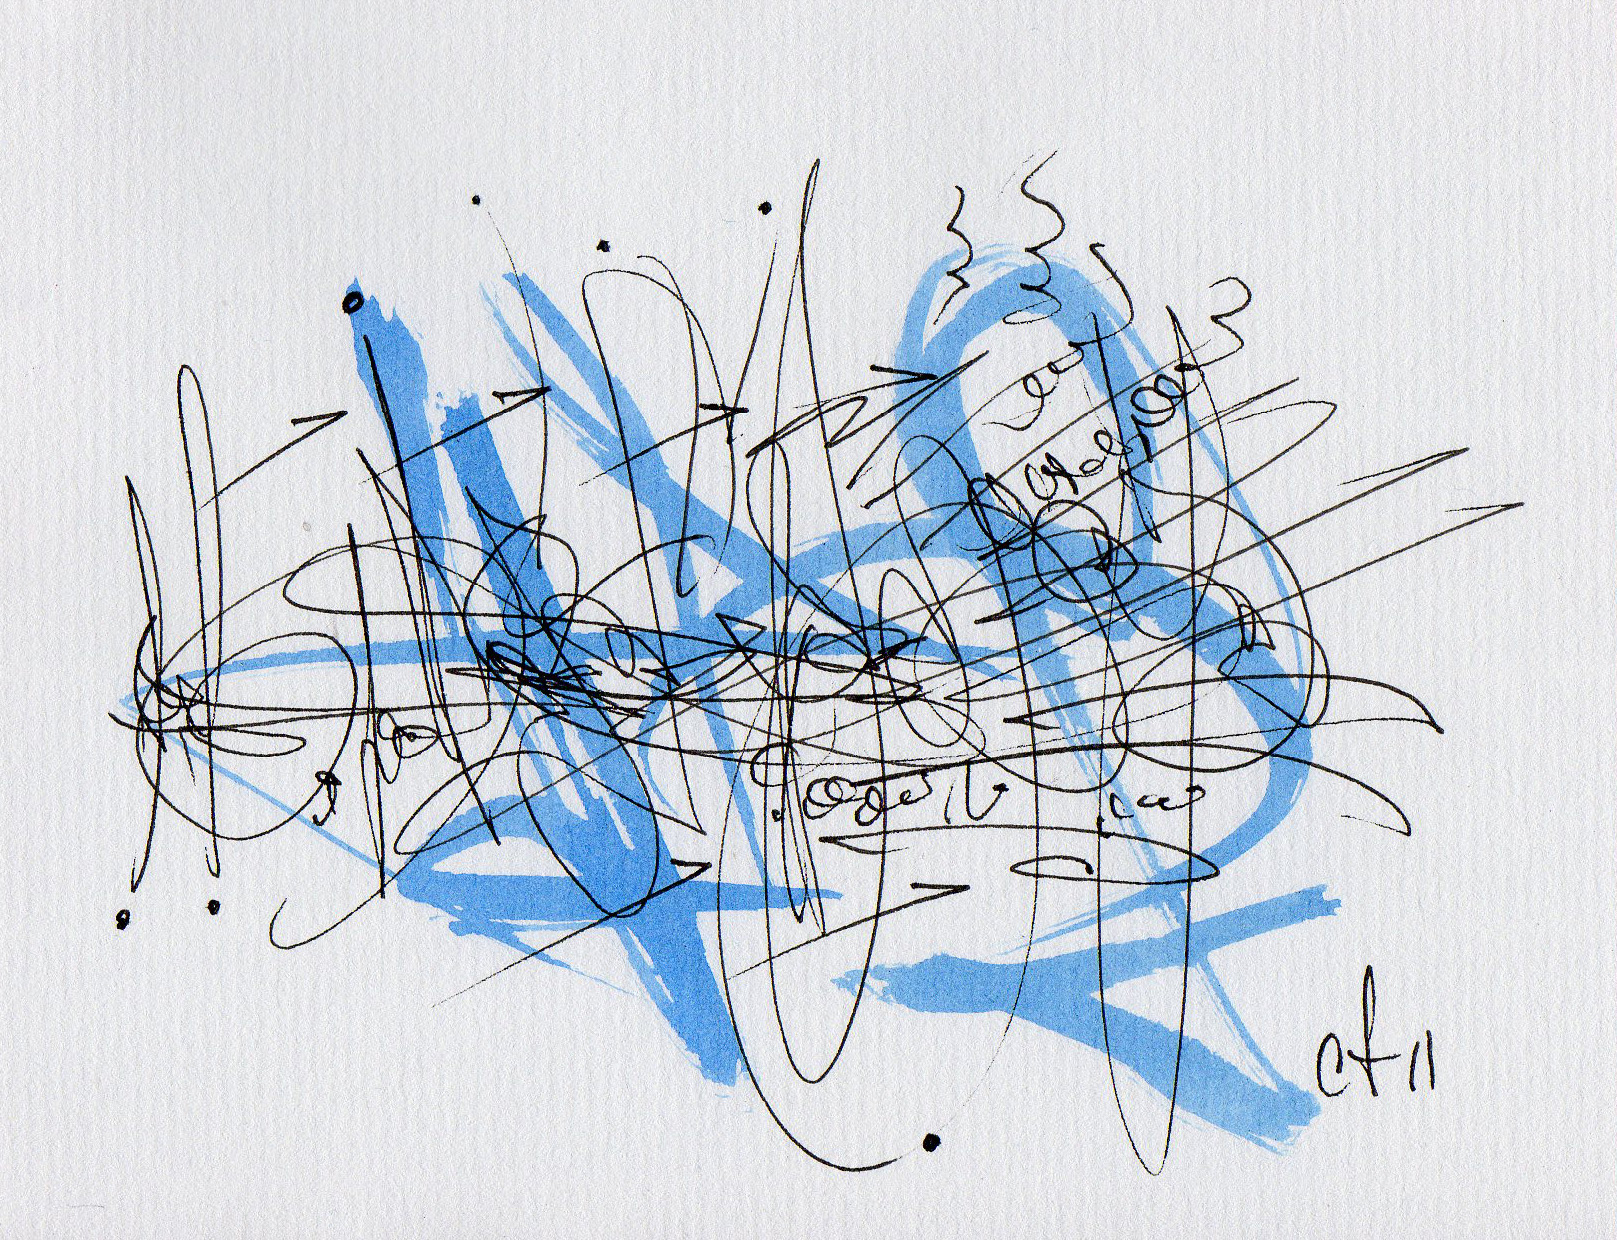 Cecil Touchon - asemic writing from 2011